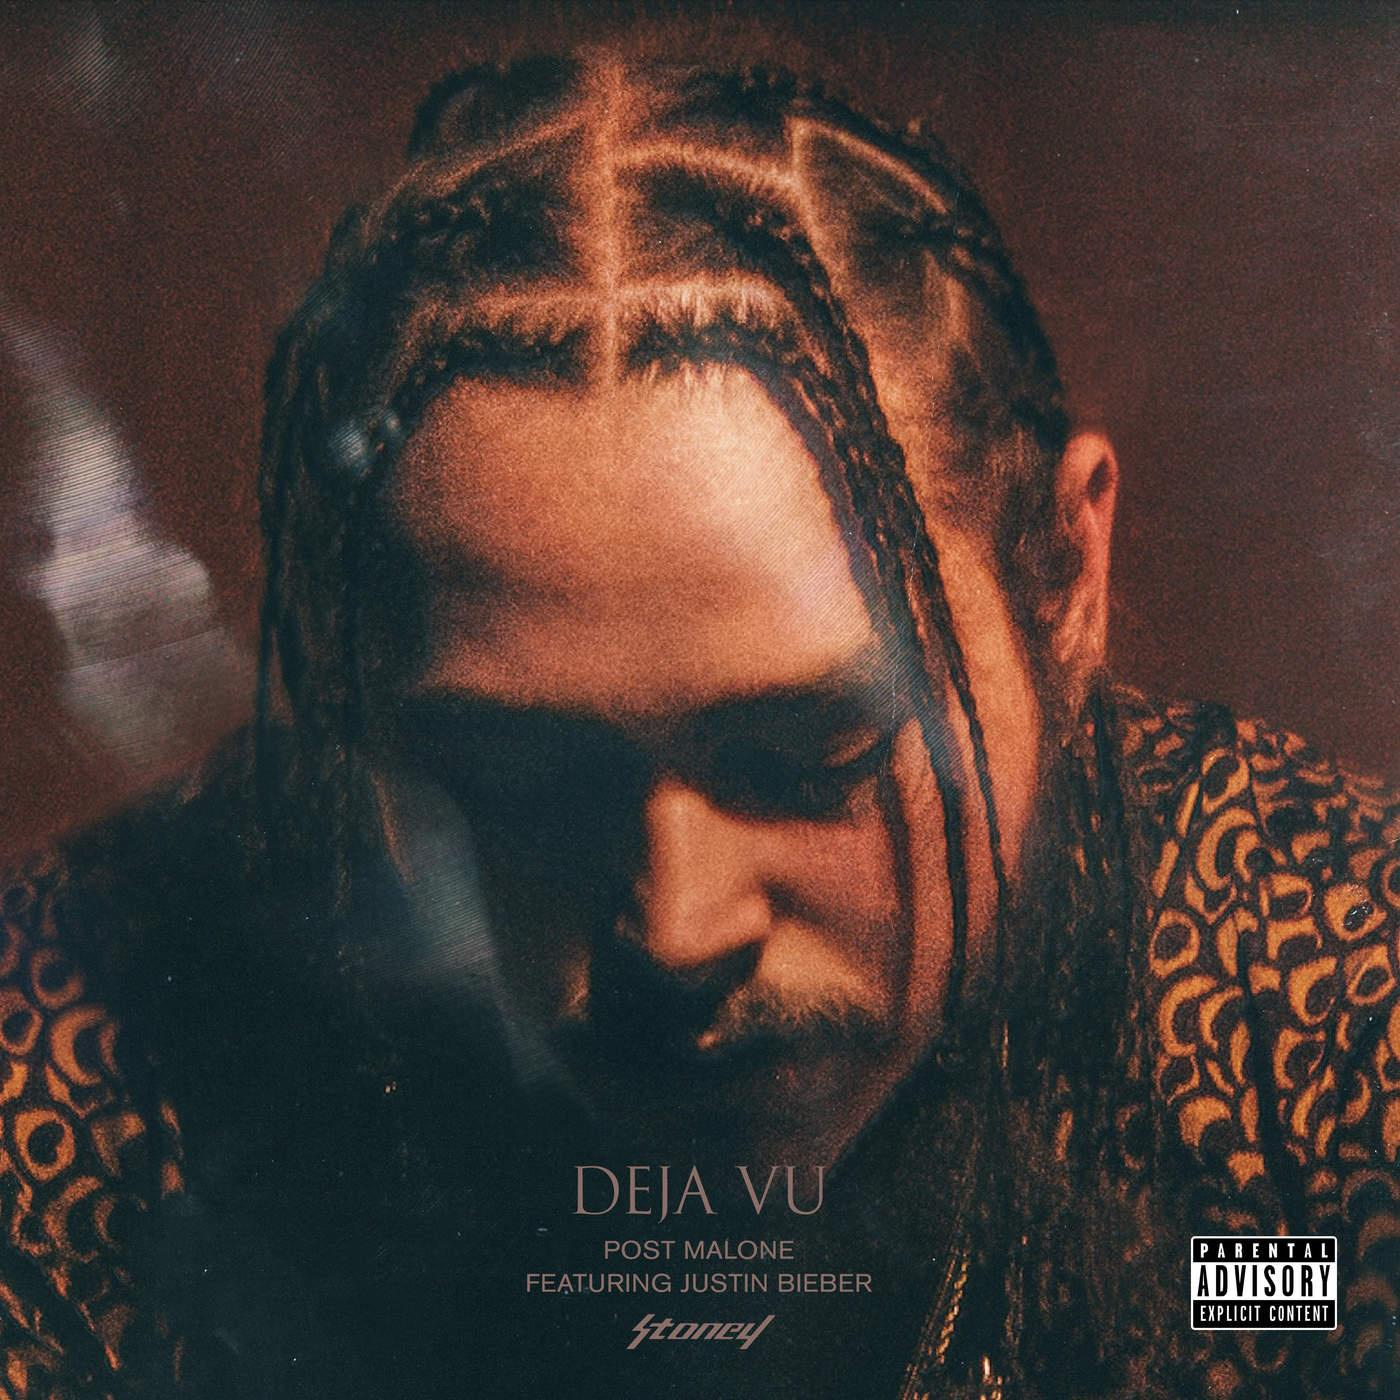 Post Malone - Deja Vu (Ft. Justin Bieber) 似曾相识